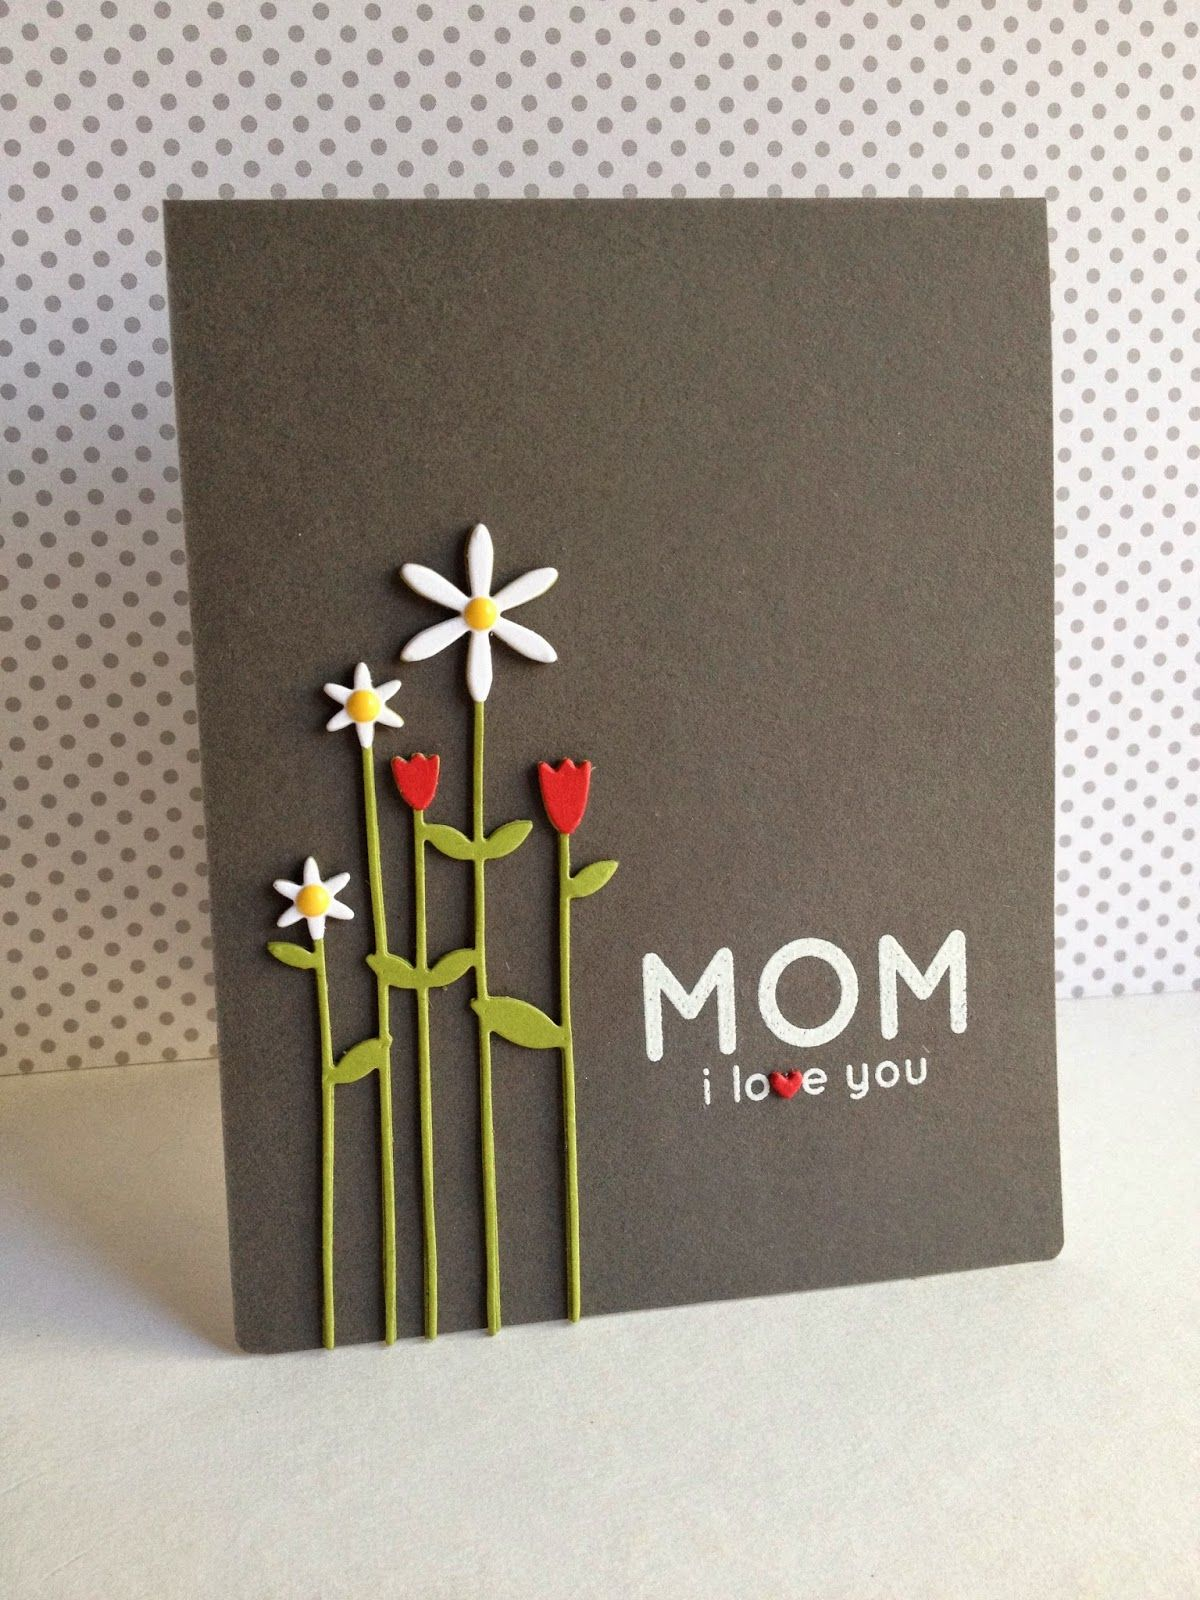 Tall Flowers For Mom Mom Cards Birthday Cards For Mom Cards